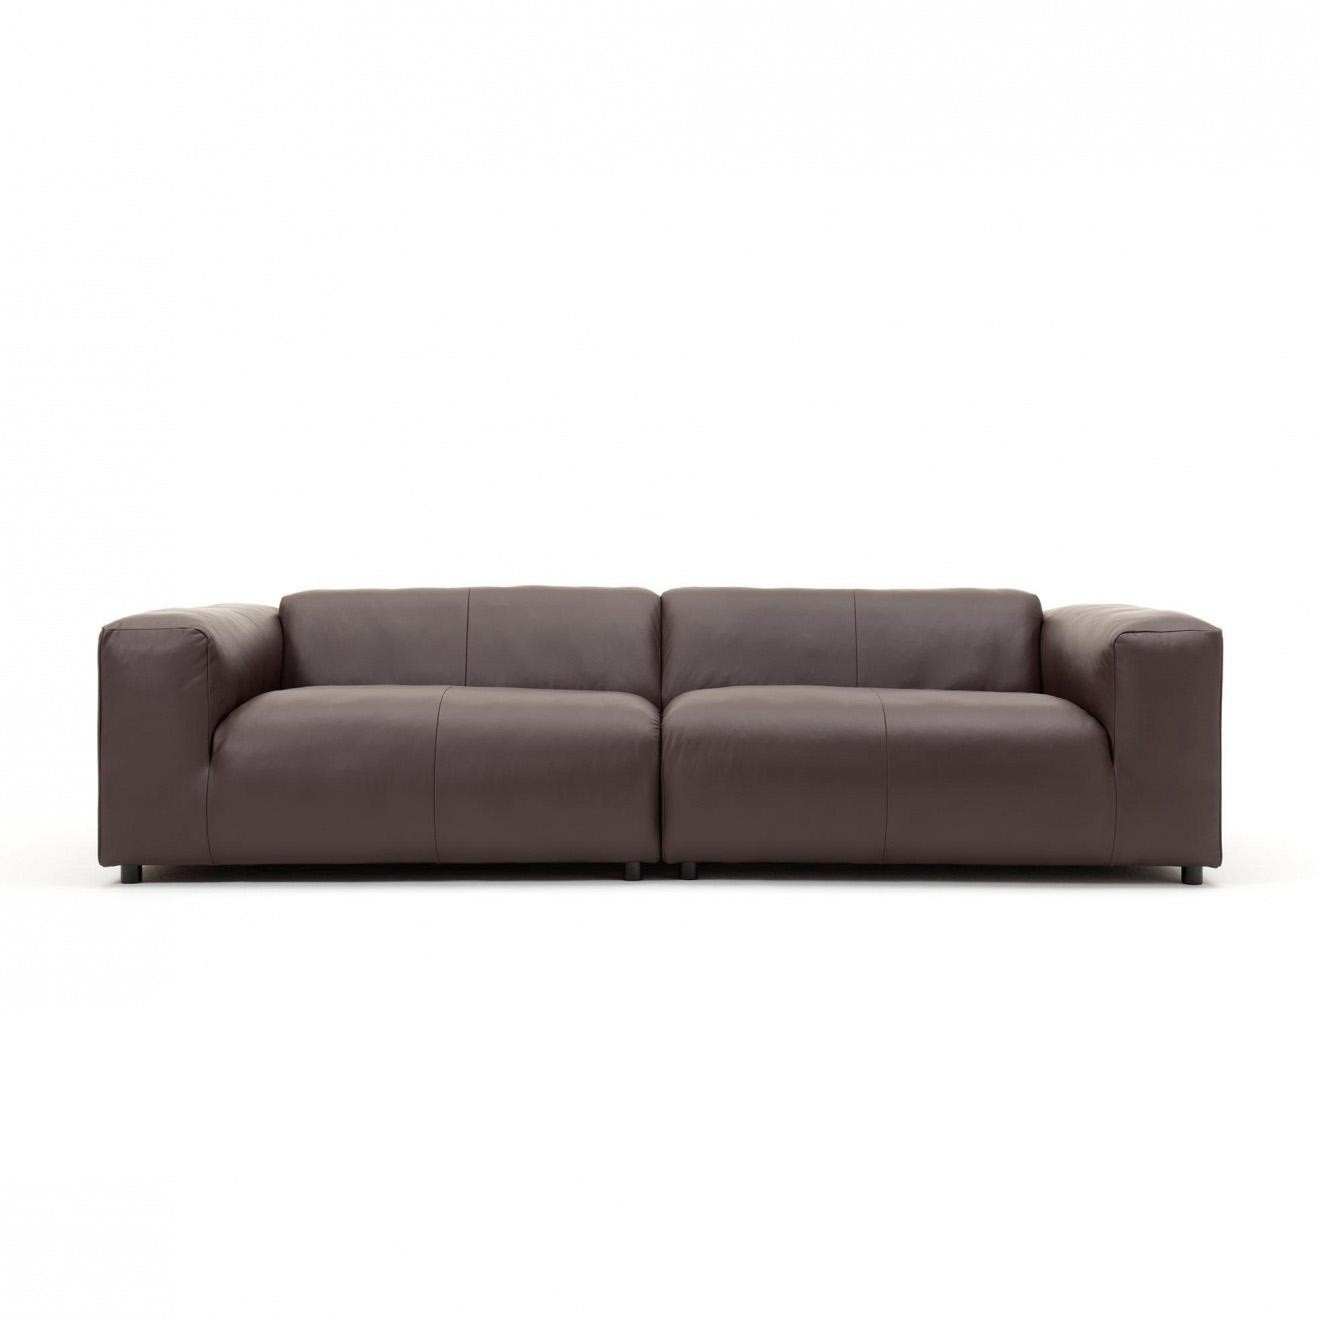 Ledersofa Schwarz Freistil 187 3 Seater Leather Sofa